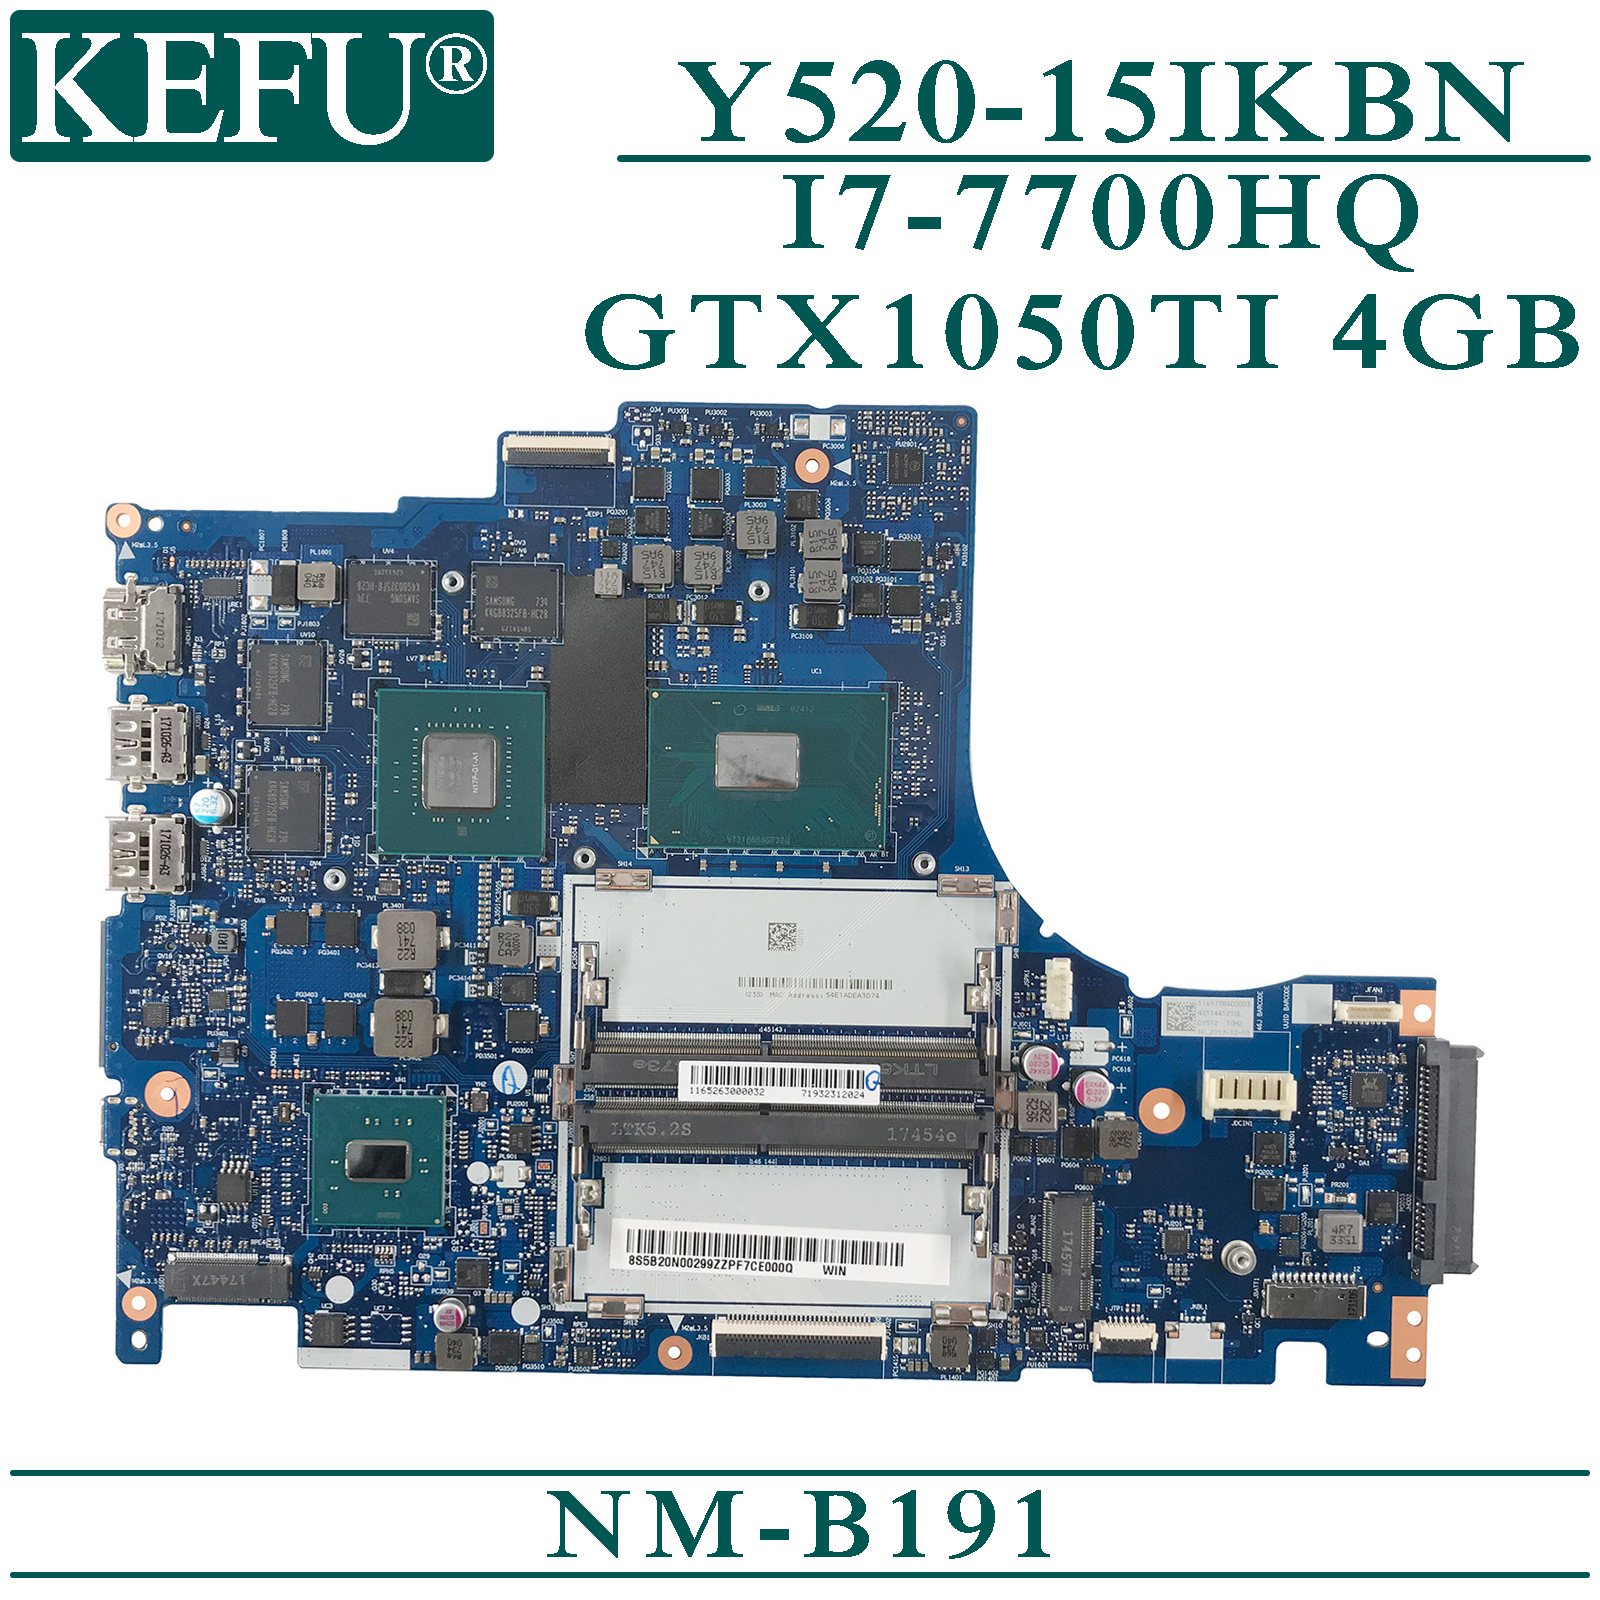 KEFU NM-B191 original mainboard for Lenovo Y520-15IKBN with I7-7700HQ <font><b>GTX1050TI</b></font>-<font><b>4GB</b></font> card Laptop motherboard image